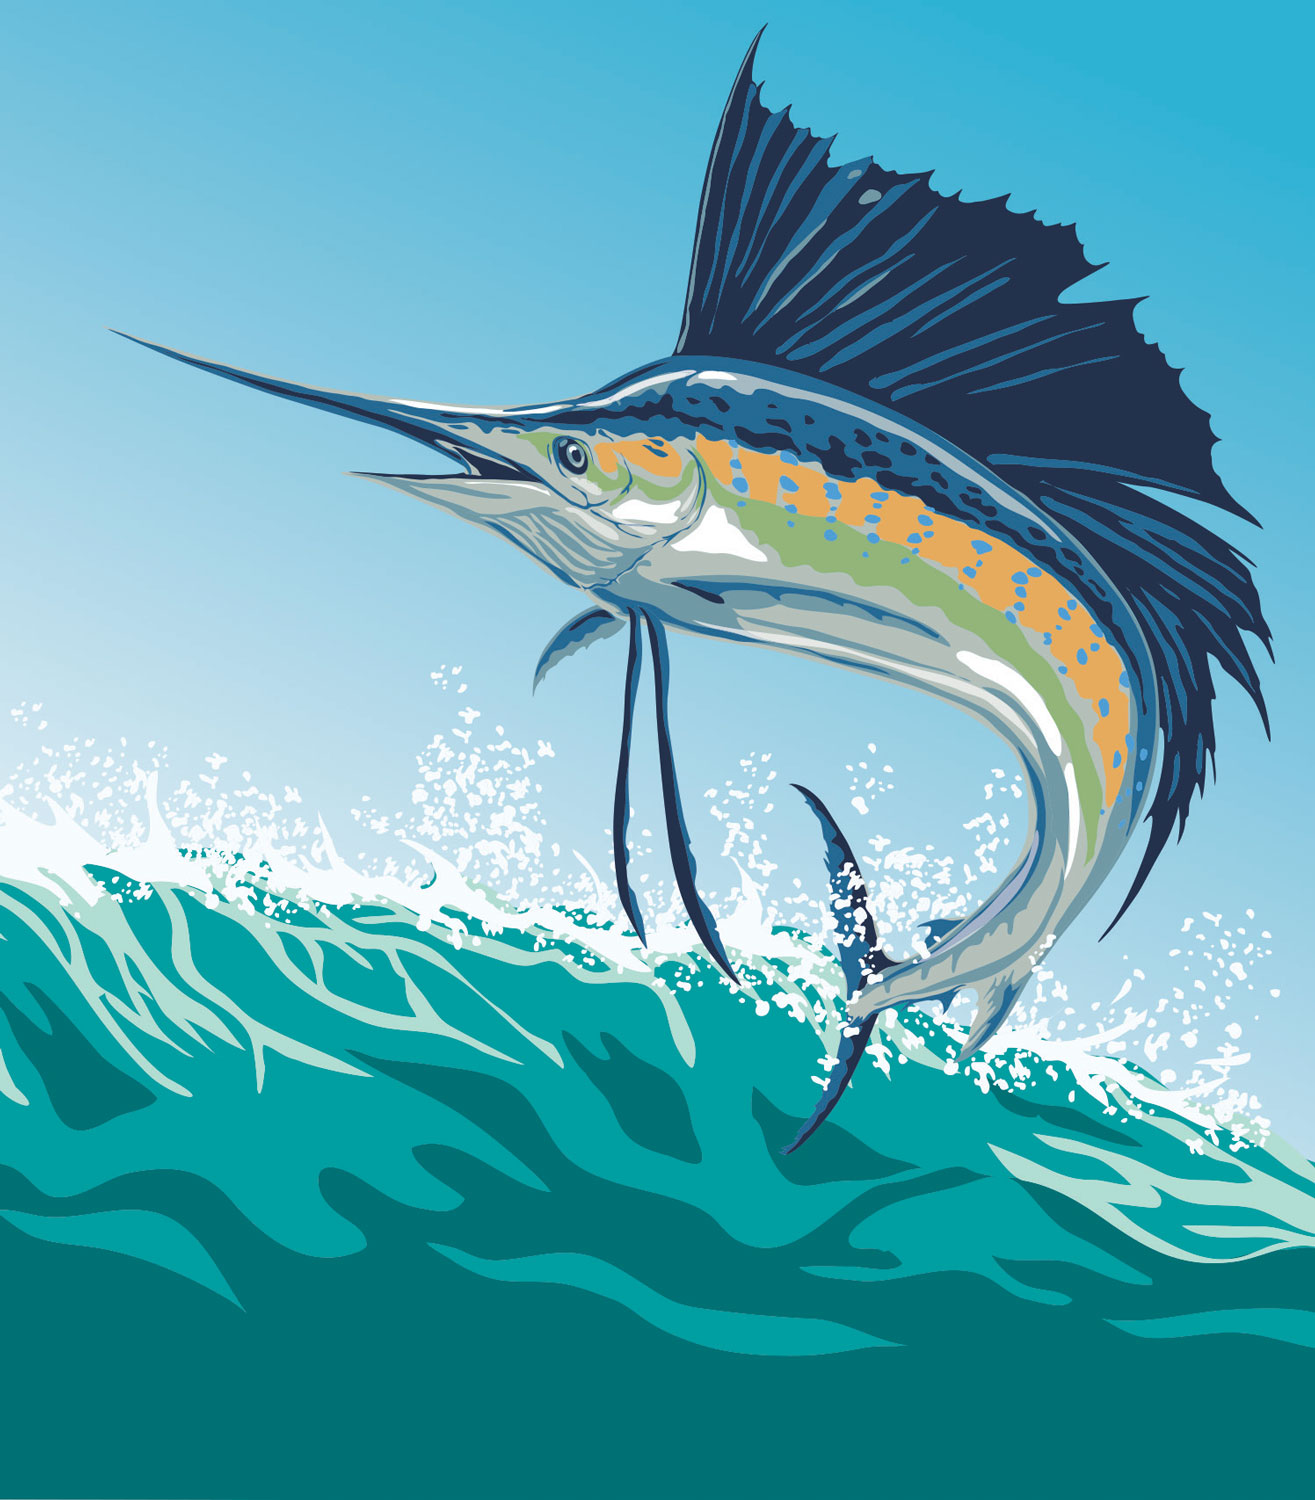 Sailfish jumping out of the water illustration